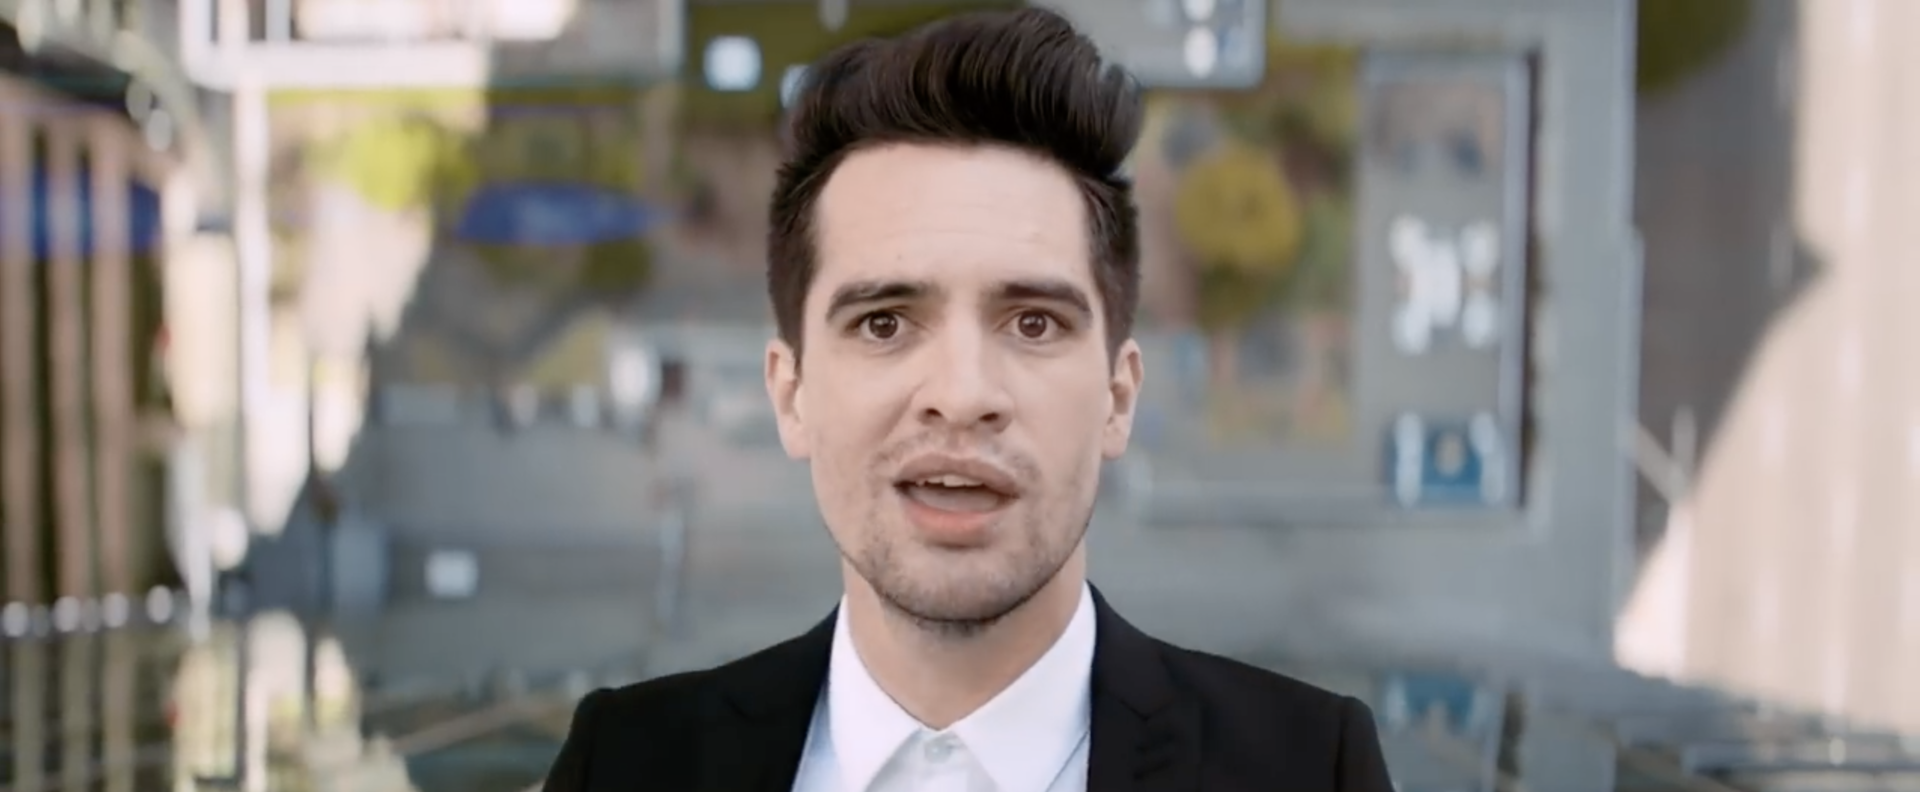 'high Hopes' Has Overtaken 'i Write Sins' As Panic! At The Disco's Most-streamed Song